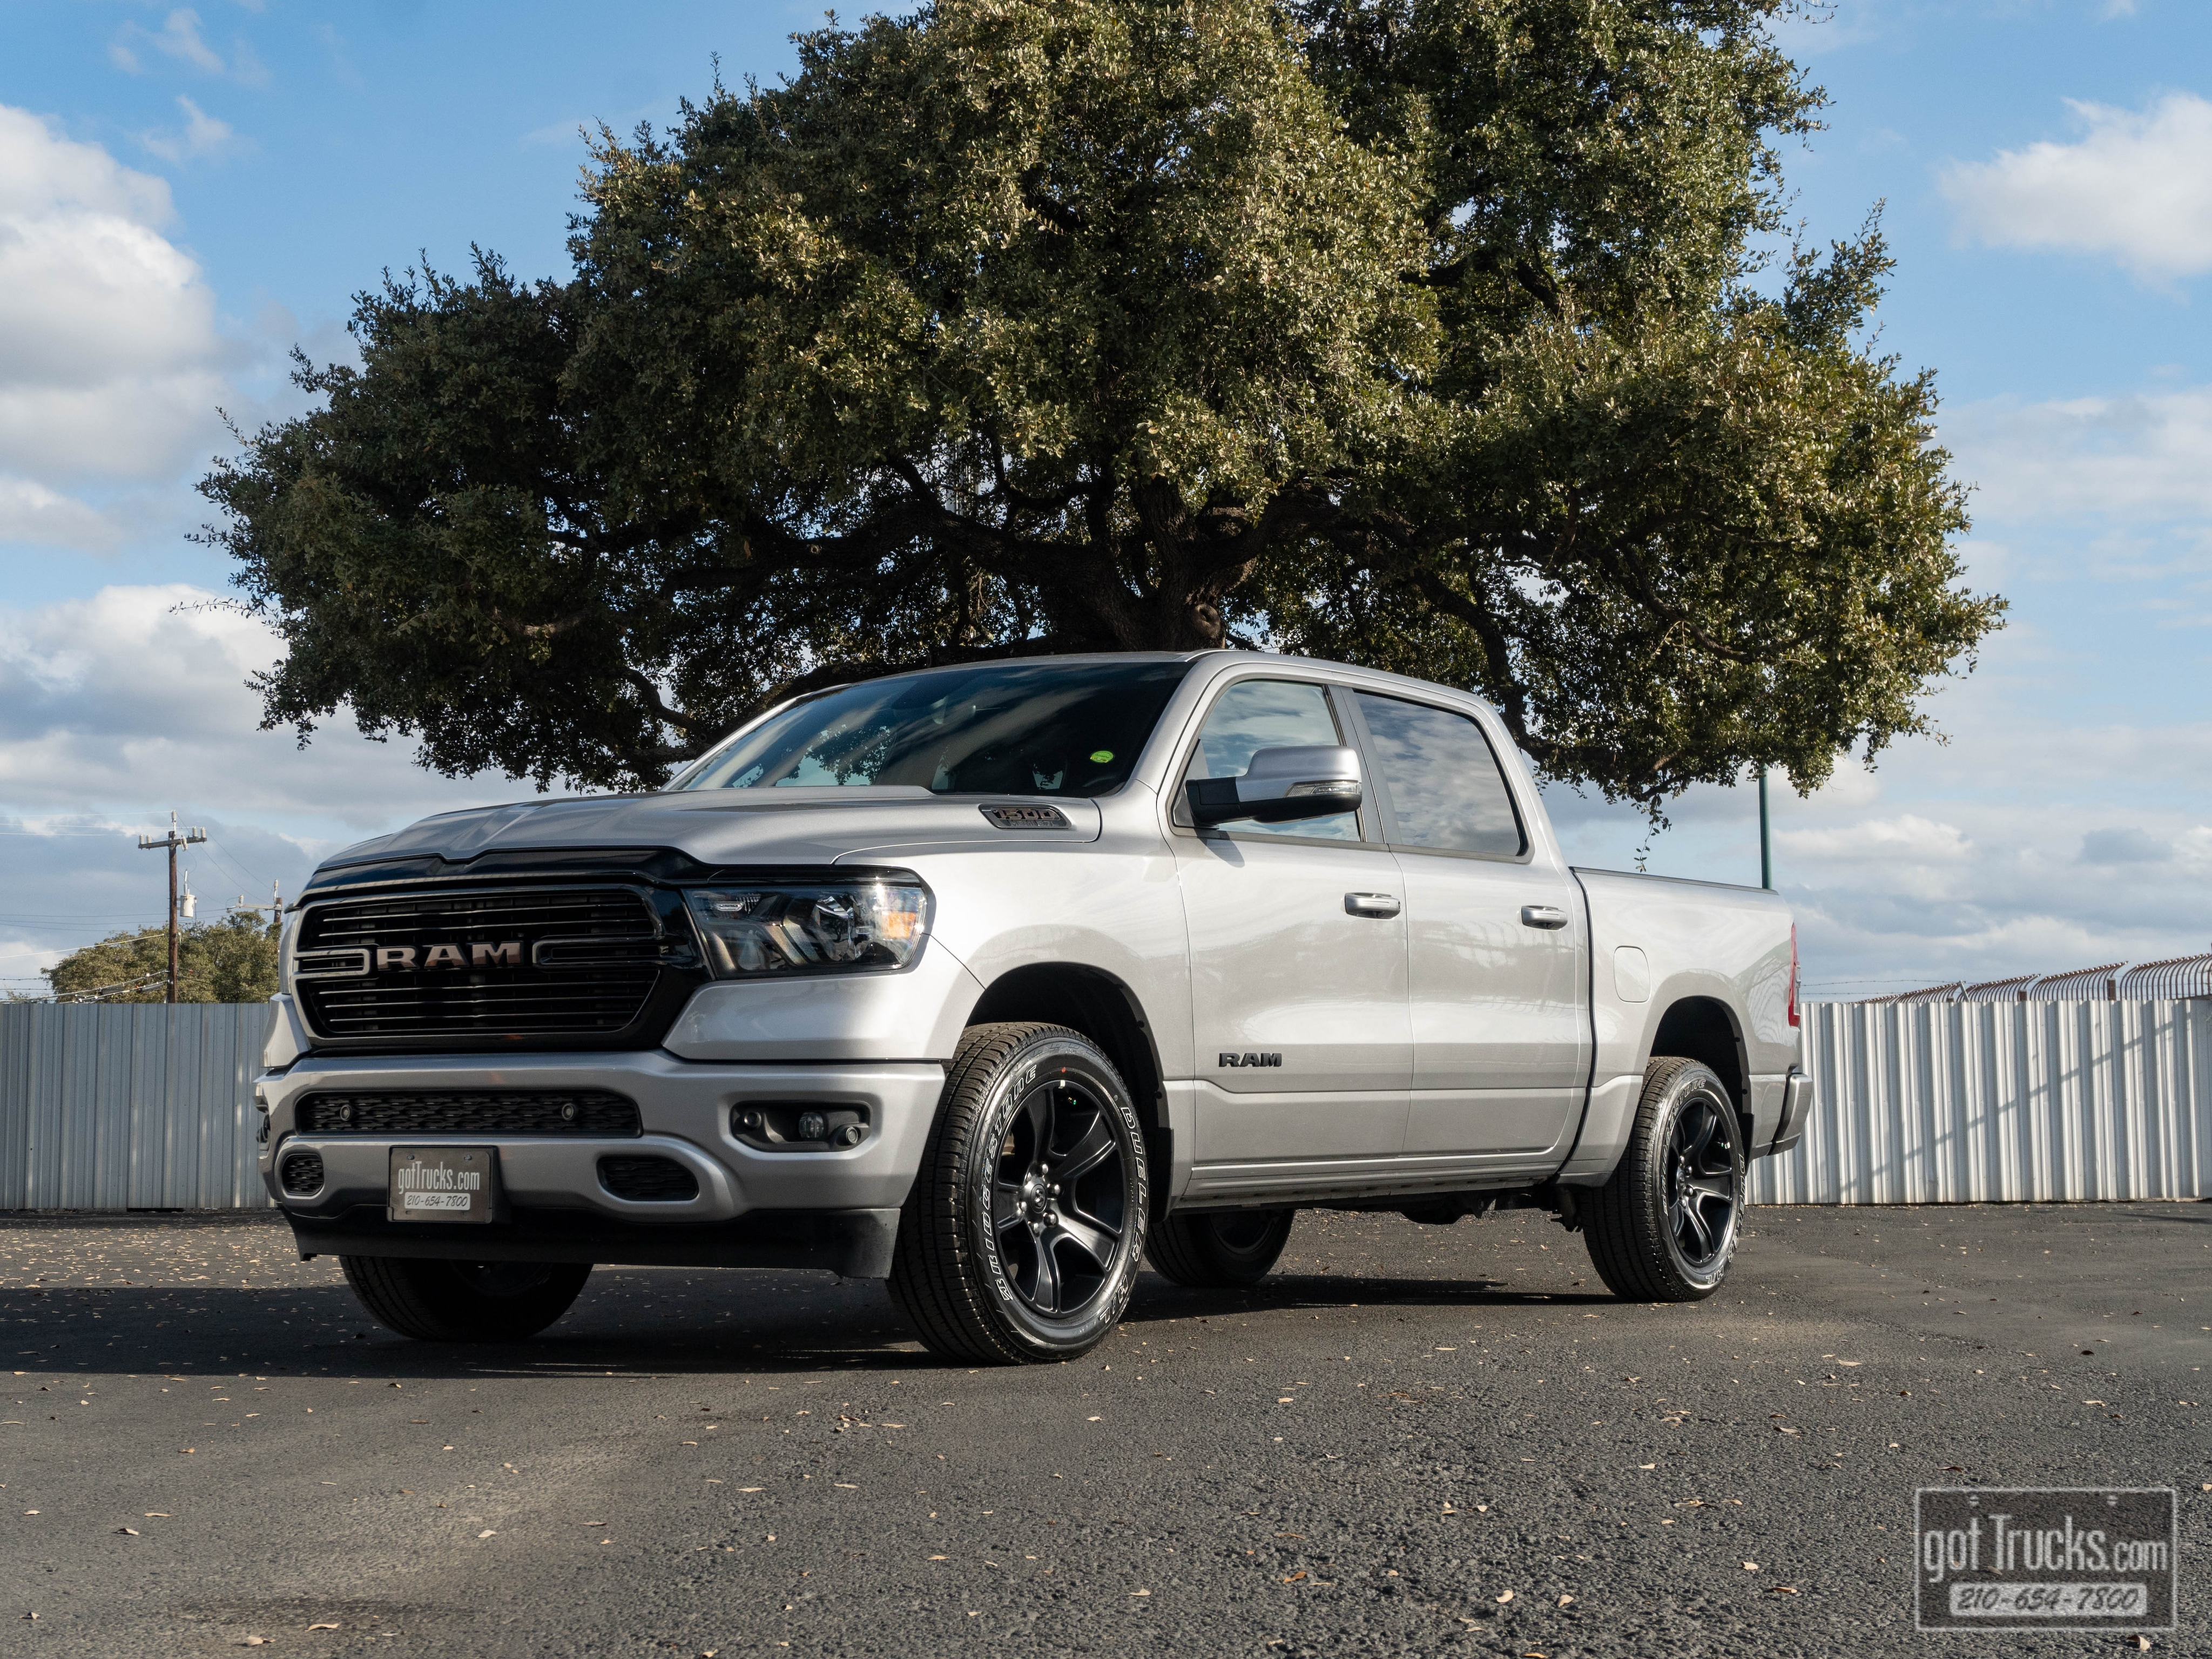 Used 2020 Dodge Ram 1500 For Sale At American Auto Brokers Vin 1c6srfftxln358062